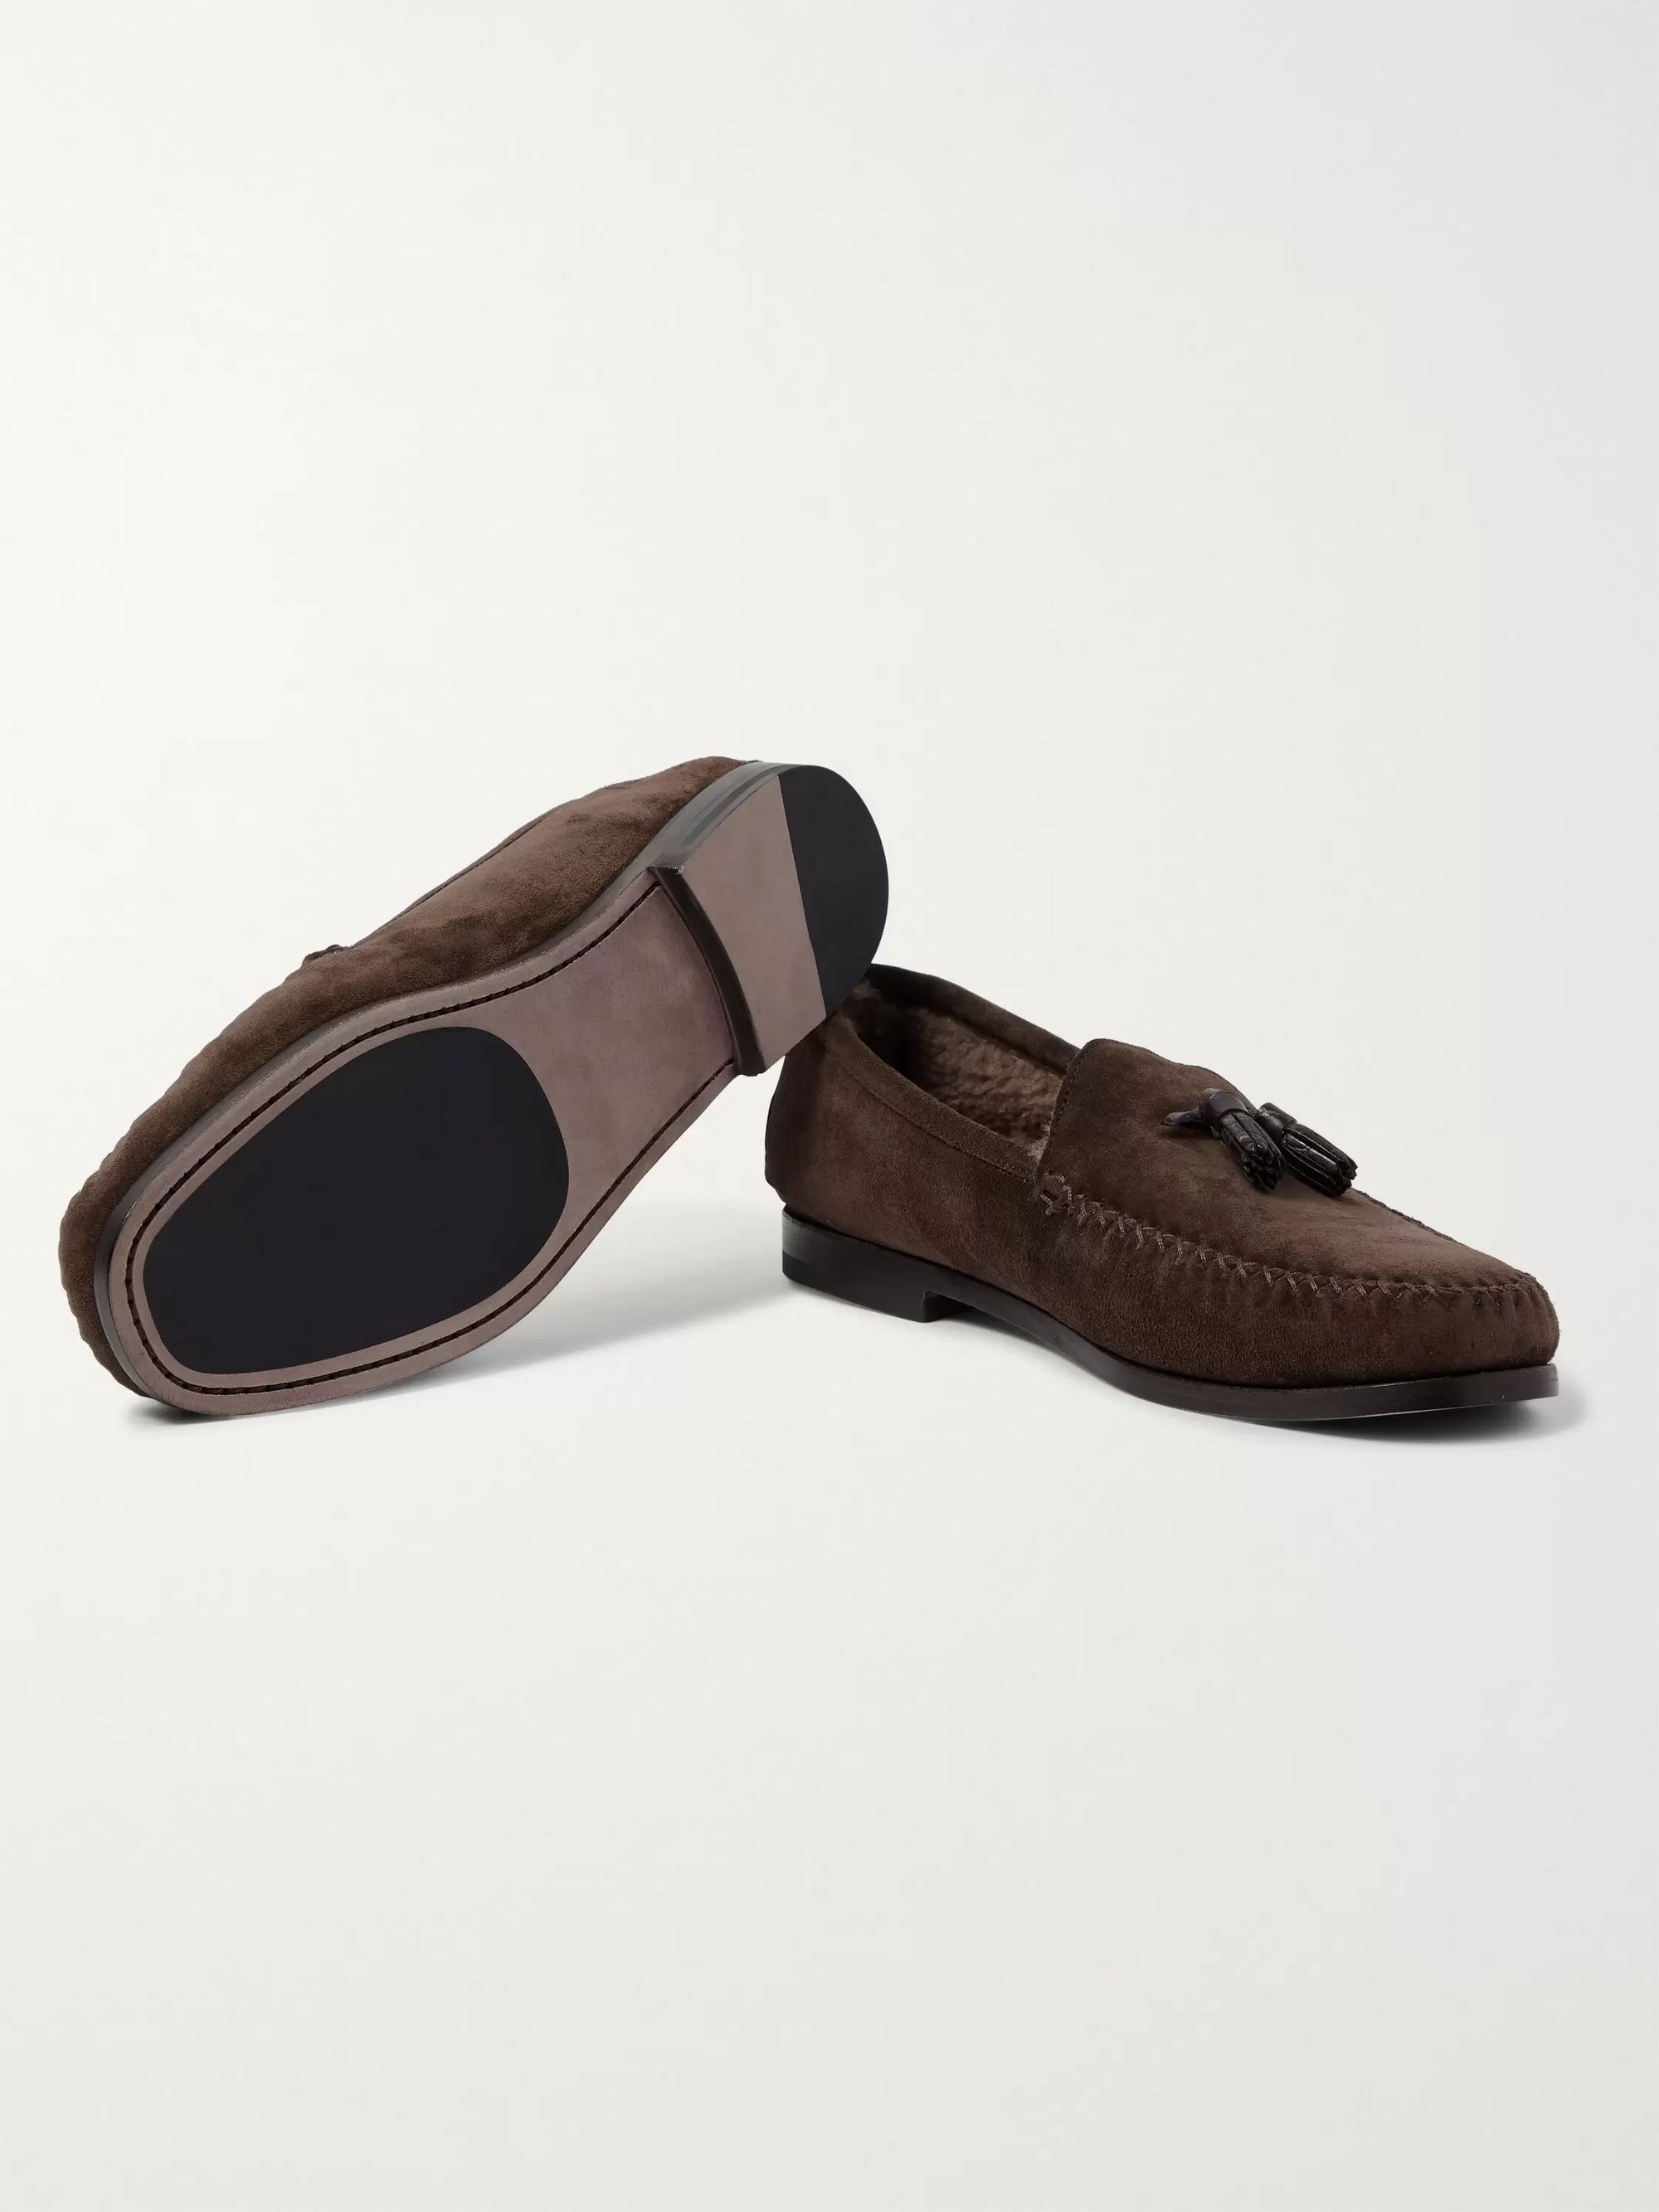 TOM FORD Barnet Shearling-Lined Suede Tasseled Slippers